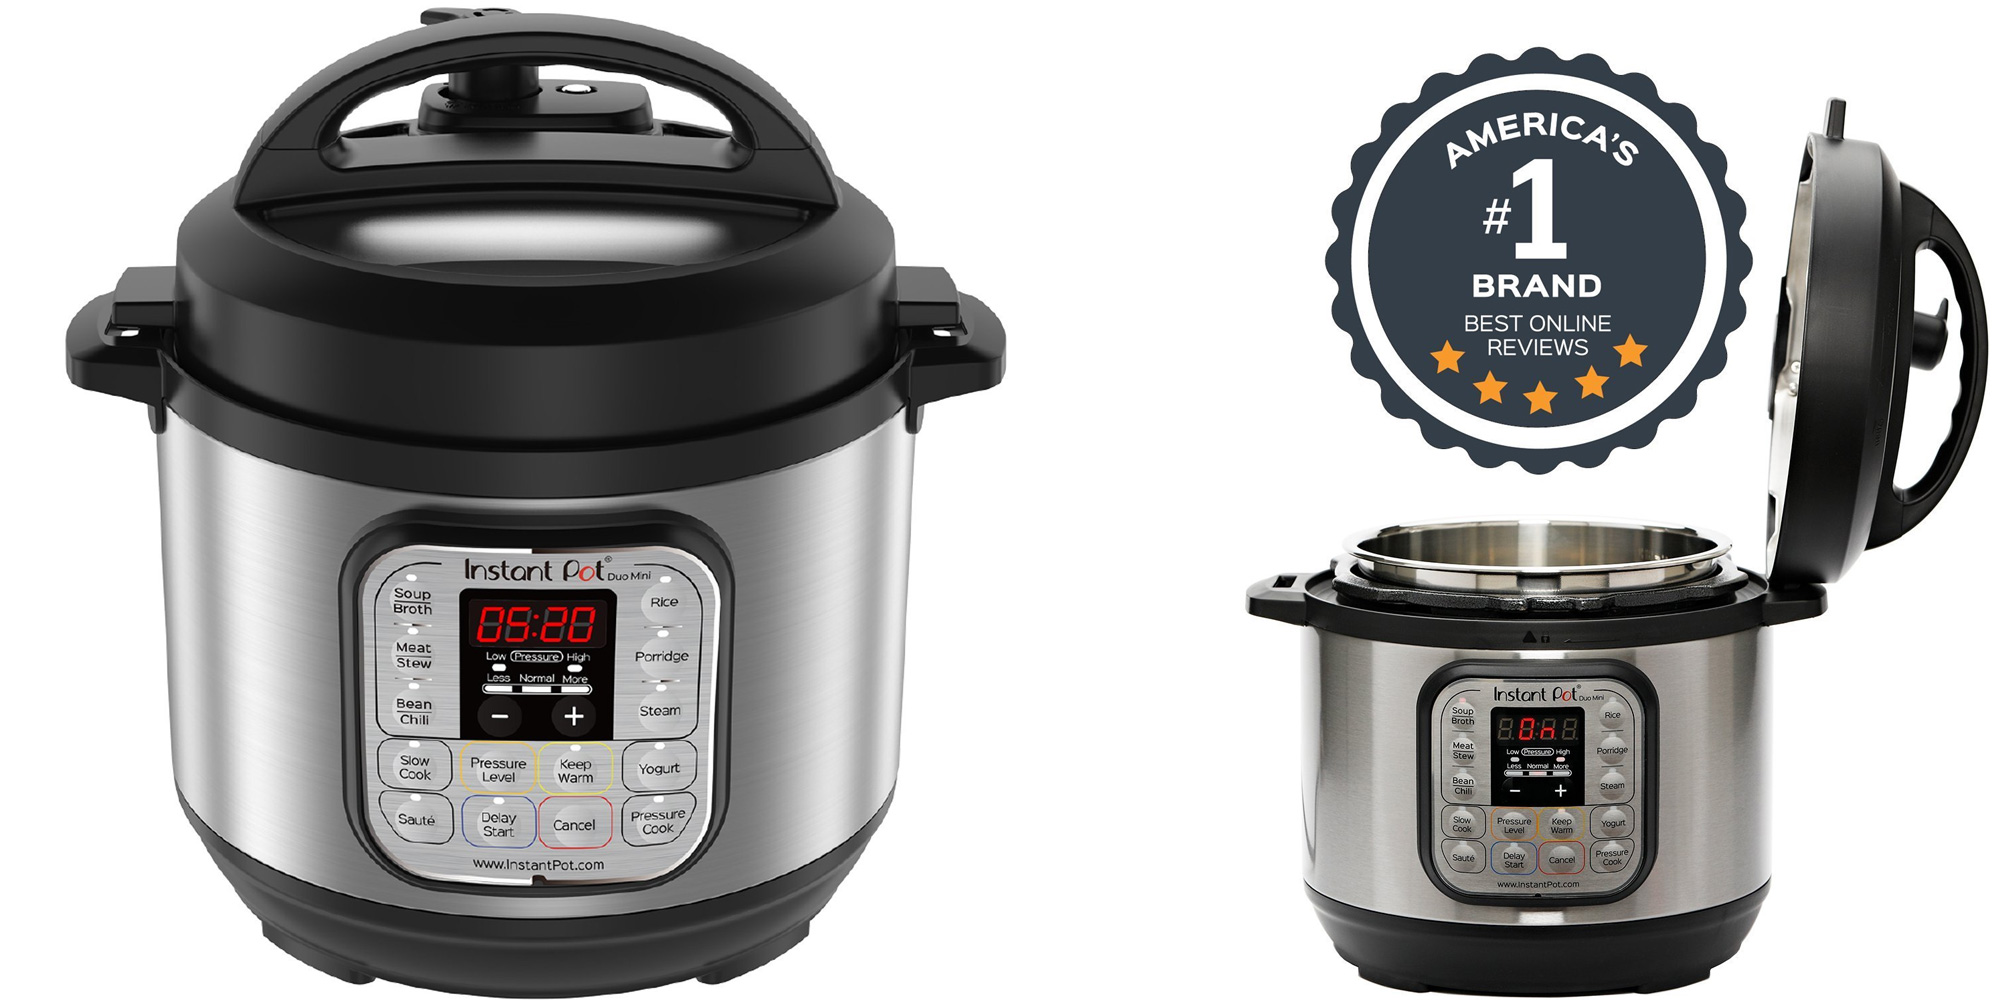 Amazon is offering the best-selling Instant Pot Duo Mini Multi Cooker at $60 shipped (25% off)